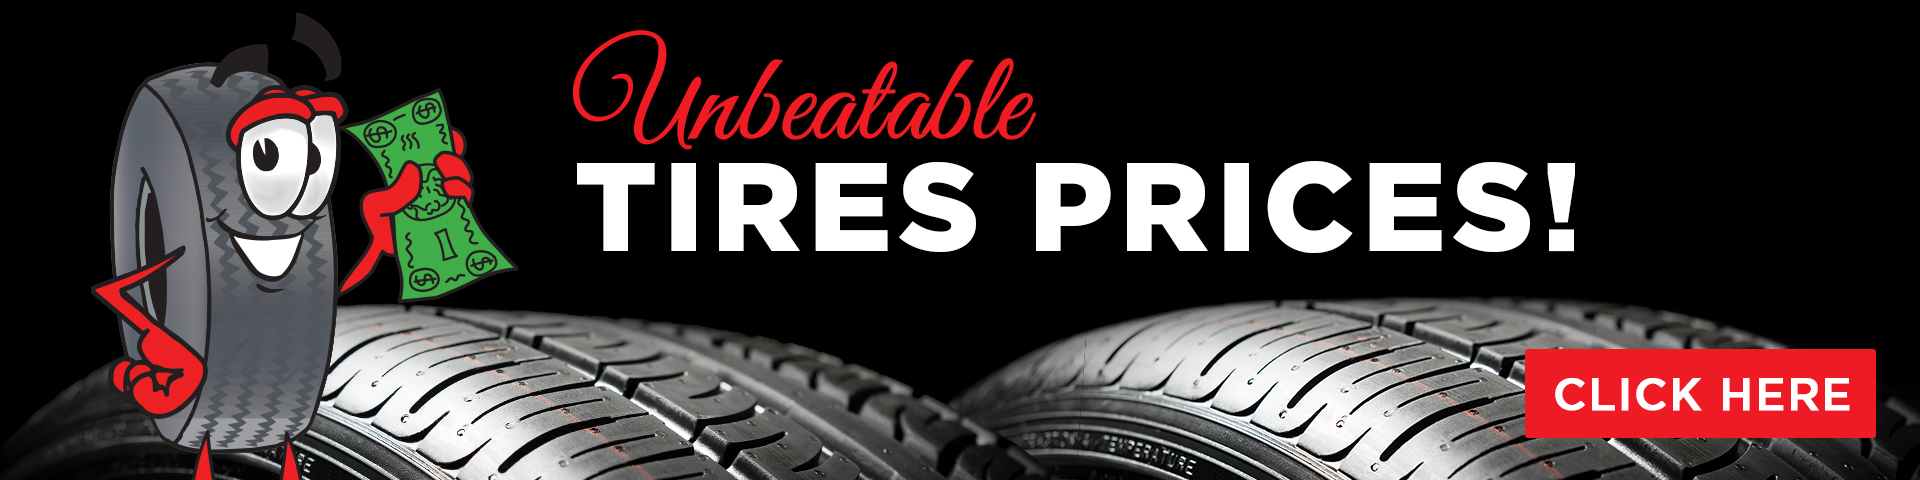 TP-Brake_Unbeatable-Tire-Prices_1920x480